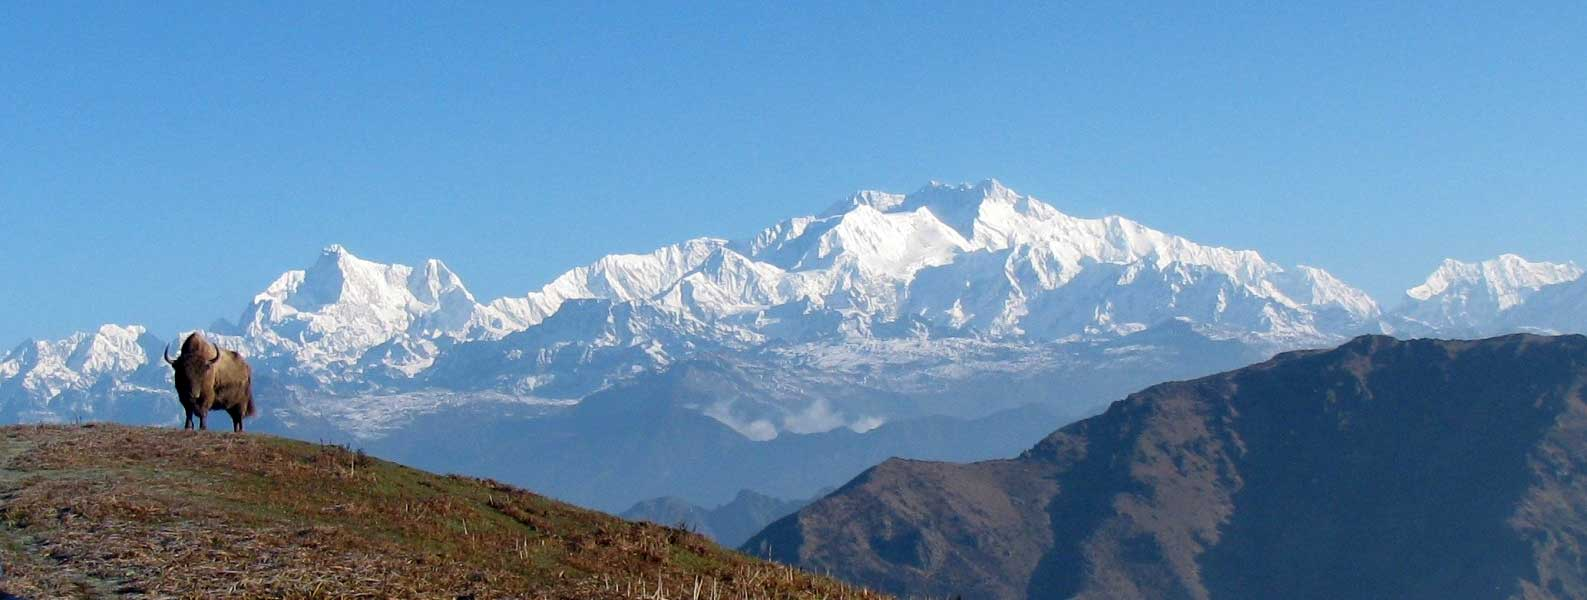 The Sandakphu Phalut trek